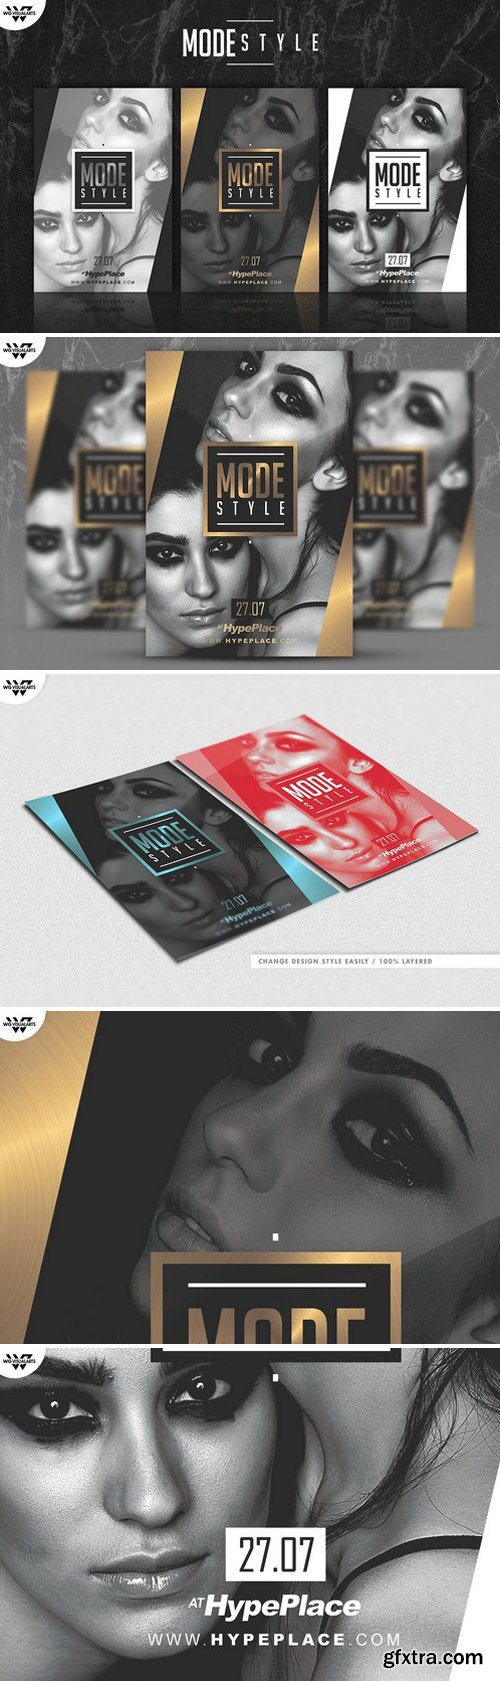 CM - MODE STYLE Flyer Template 2359321